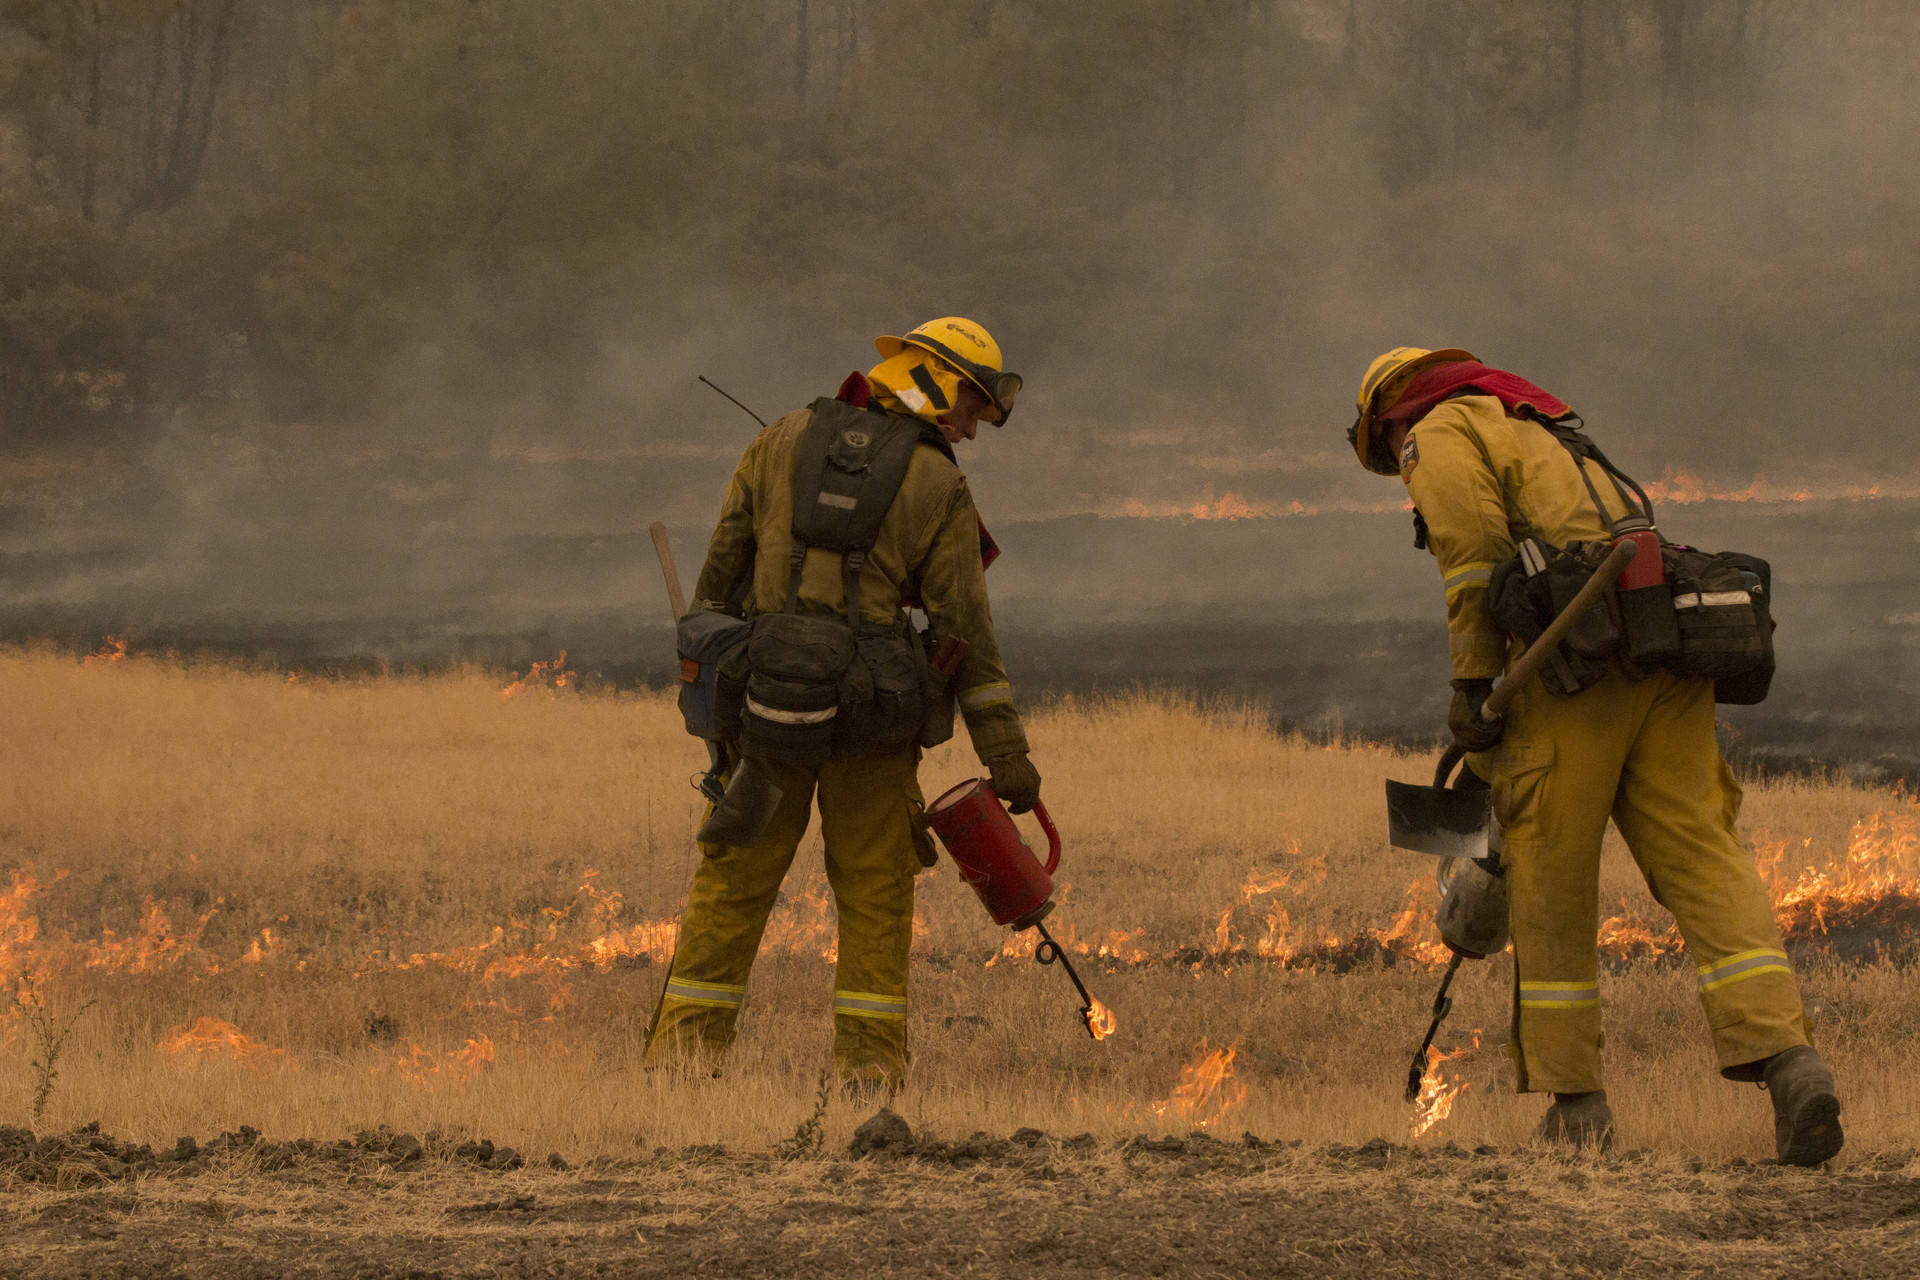 Cal Fire strike team 9272C execute a controlled burn at the southeast corner of the Ranch Fire on the Lake County and Colusa County border on Aug. 7. Anne Wernikoff/KQED